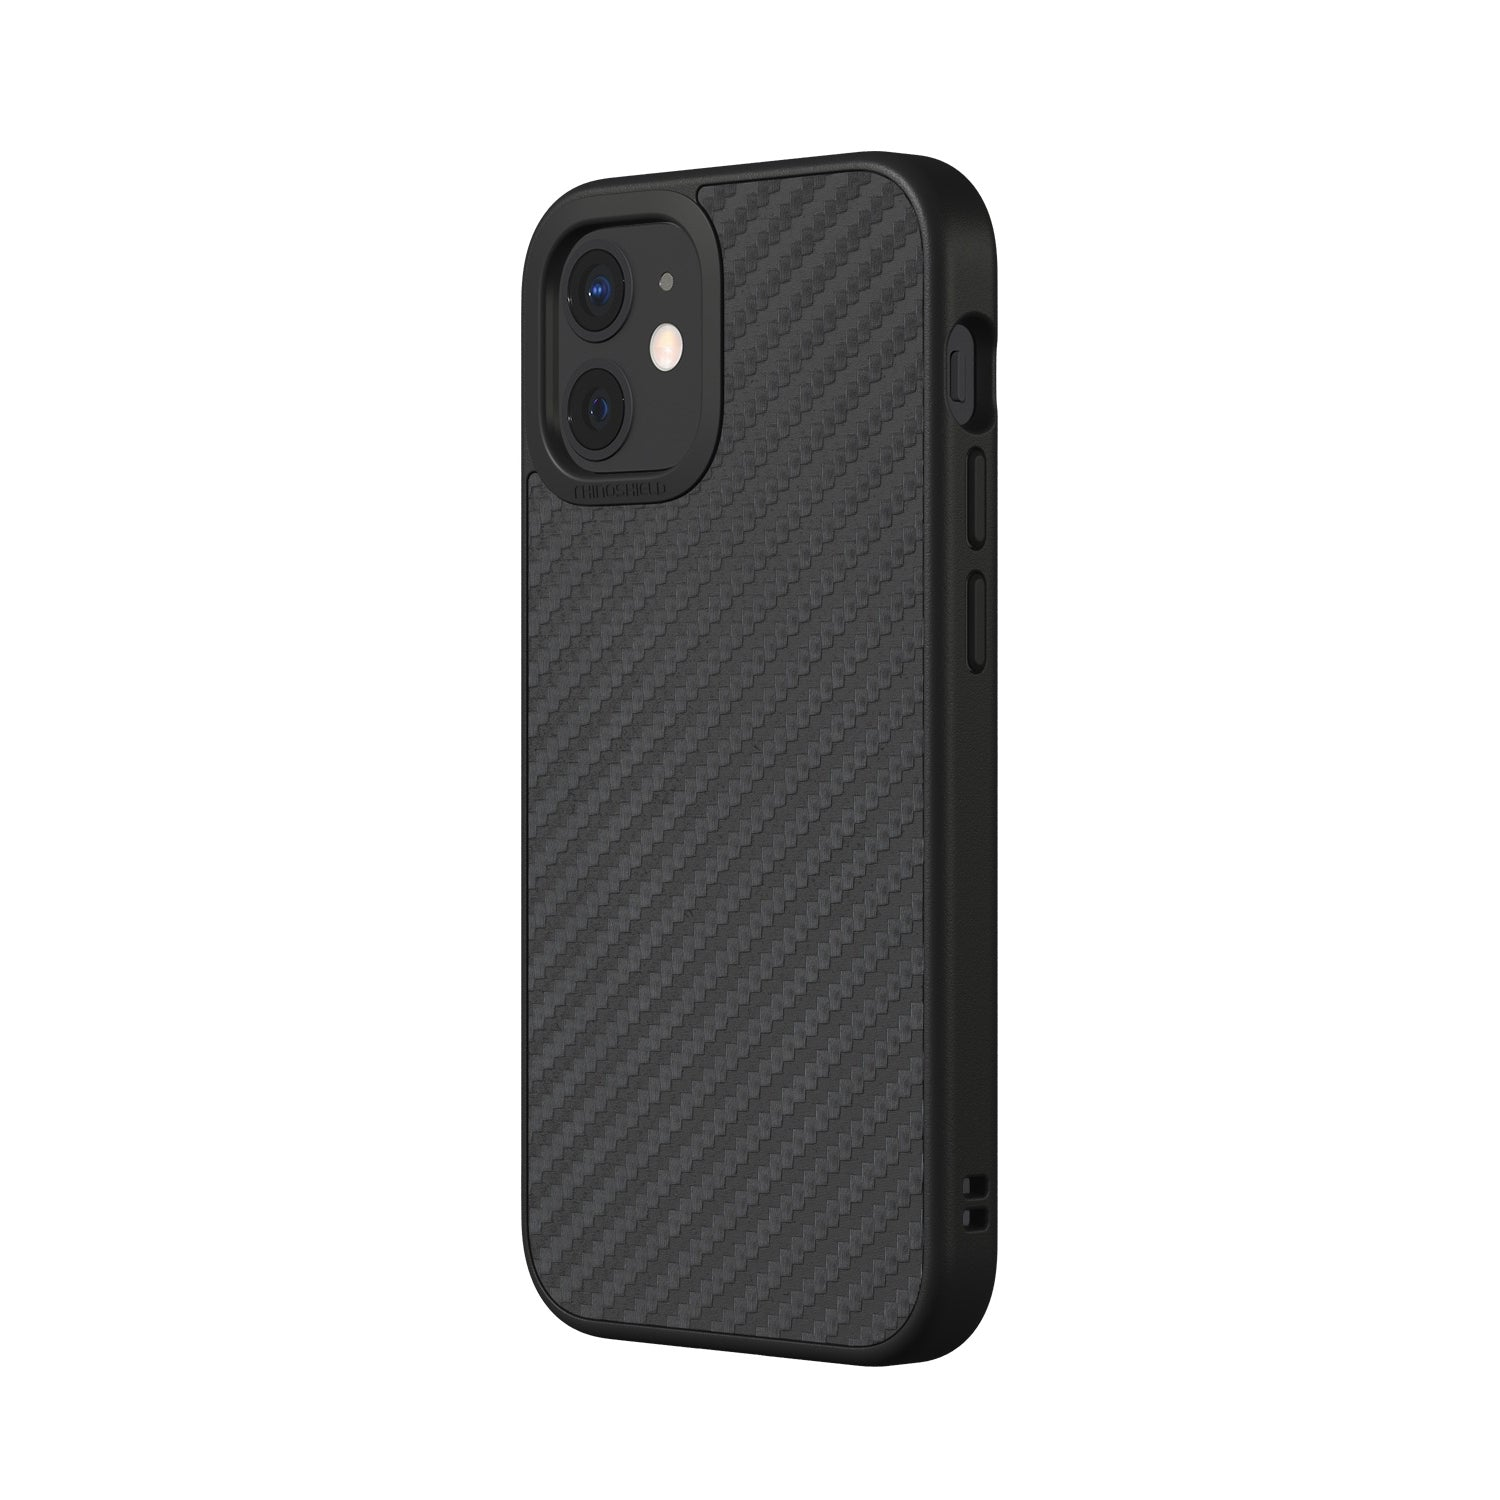 RhinoShield SolidSuit Rugged Case For iPhone 12 mini - Carbon Fiber